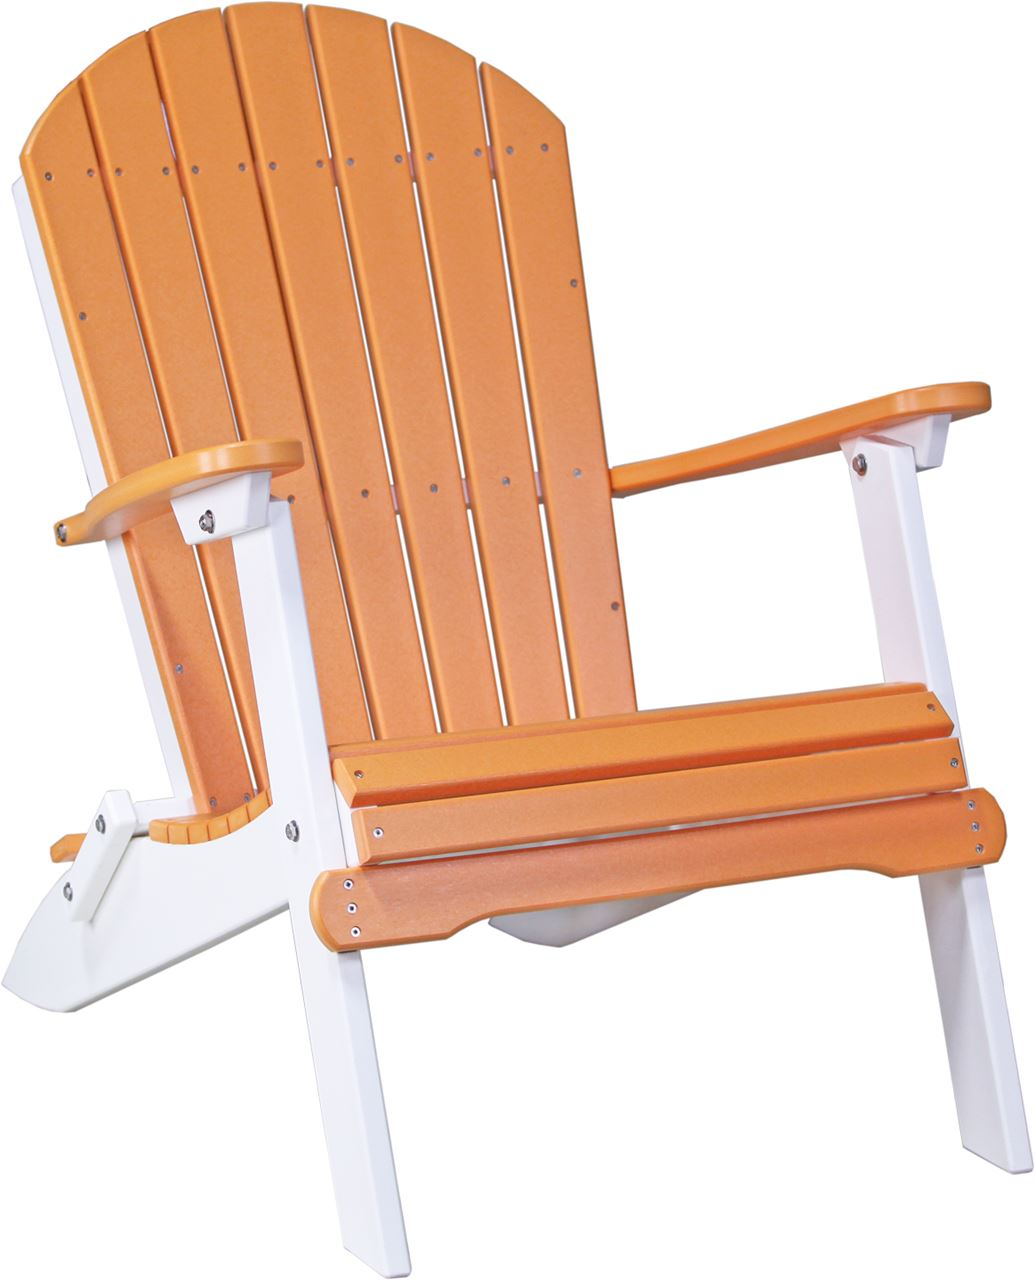 amish folding adirondack chair plans toddler booster seat four seasons furnishings made furniture luxcraft